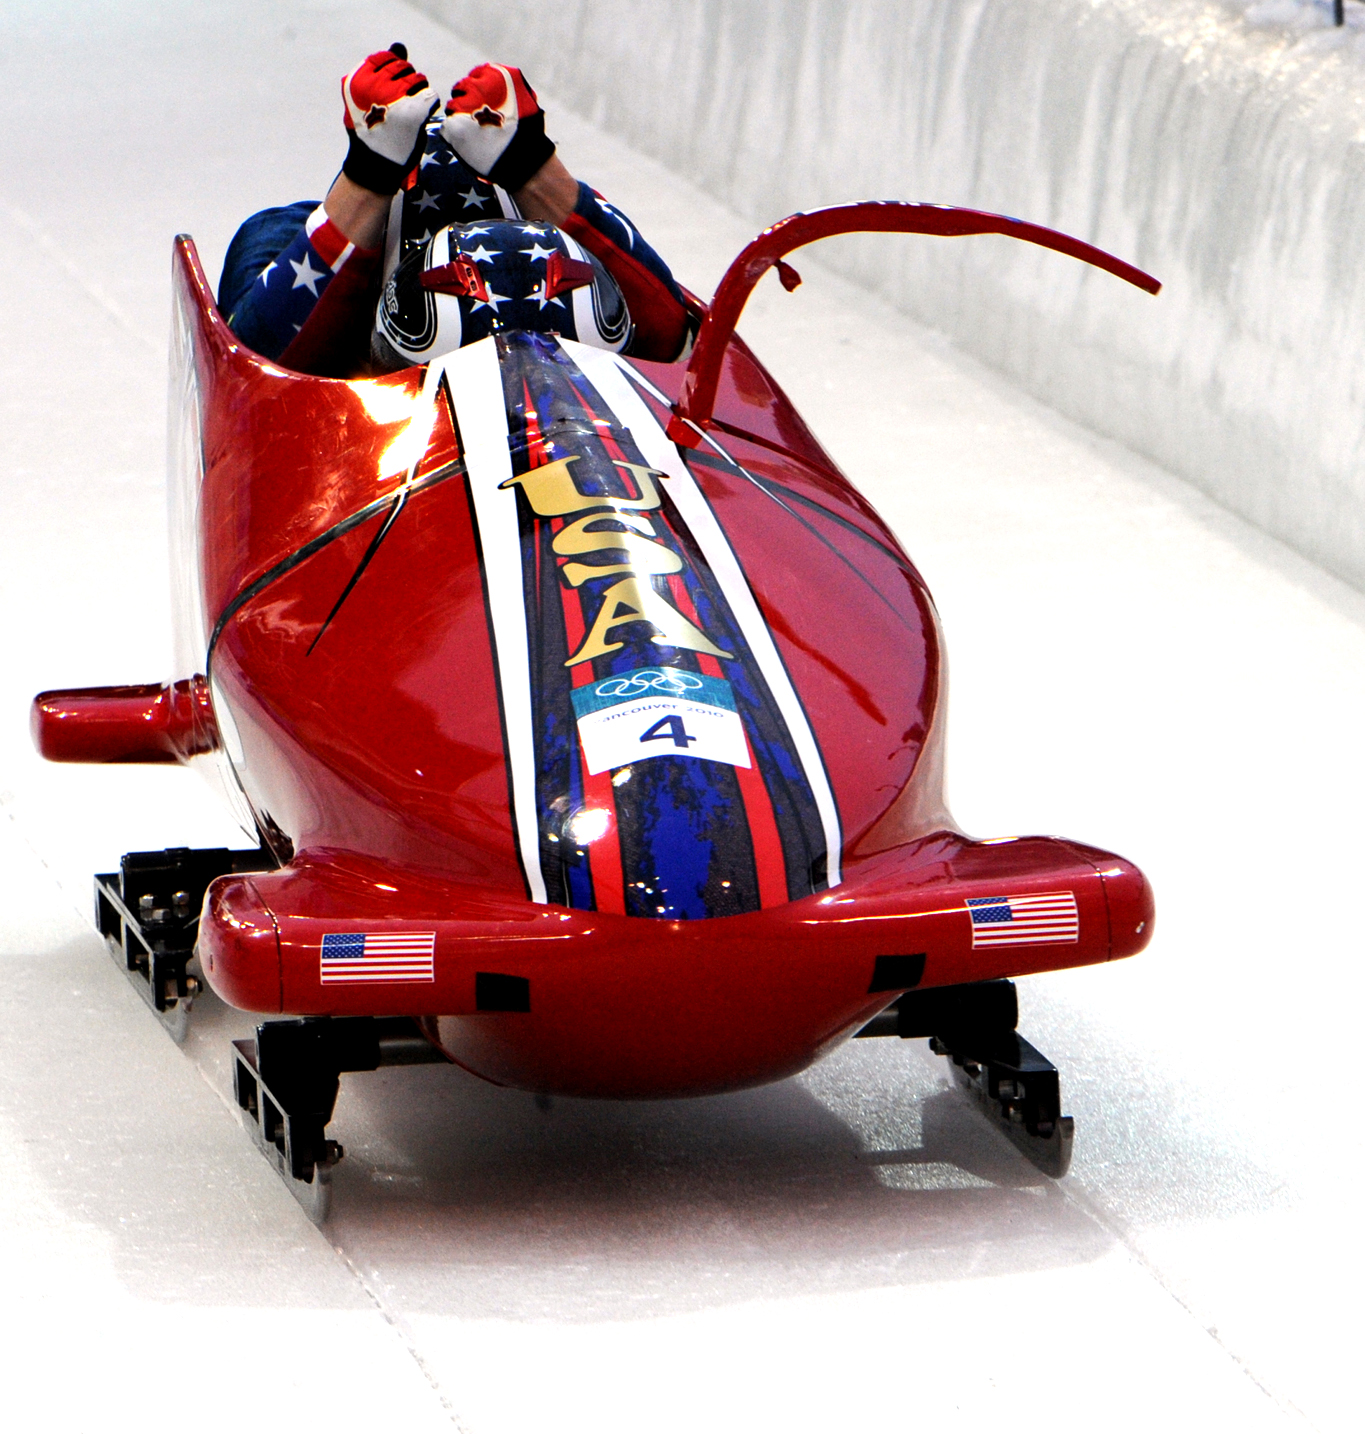 File Usa 1 In Heat 3 Of 2 Woman Bobsleigh At Winter